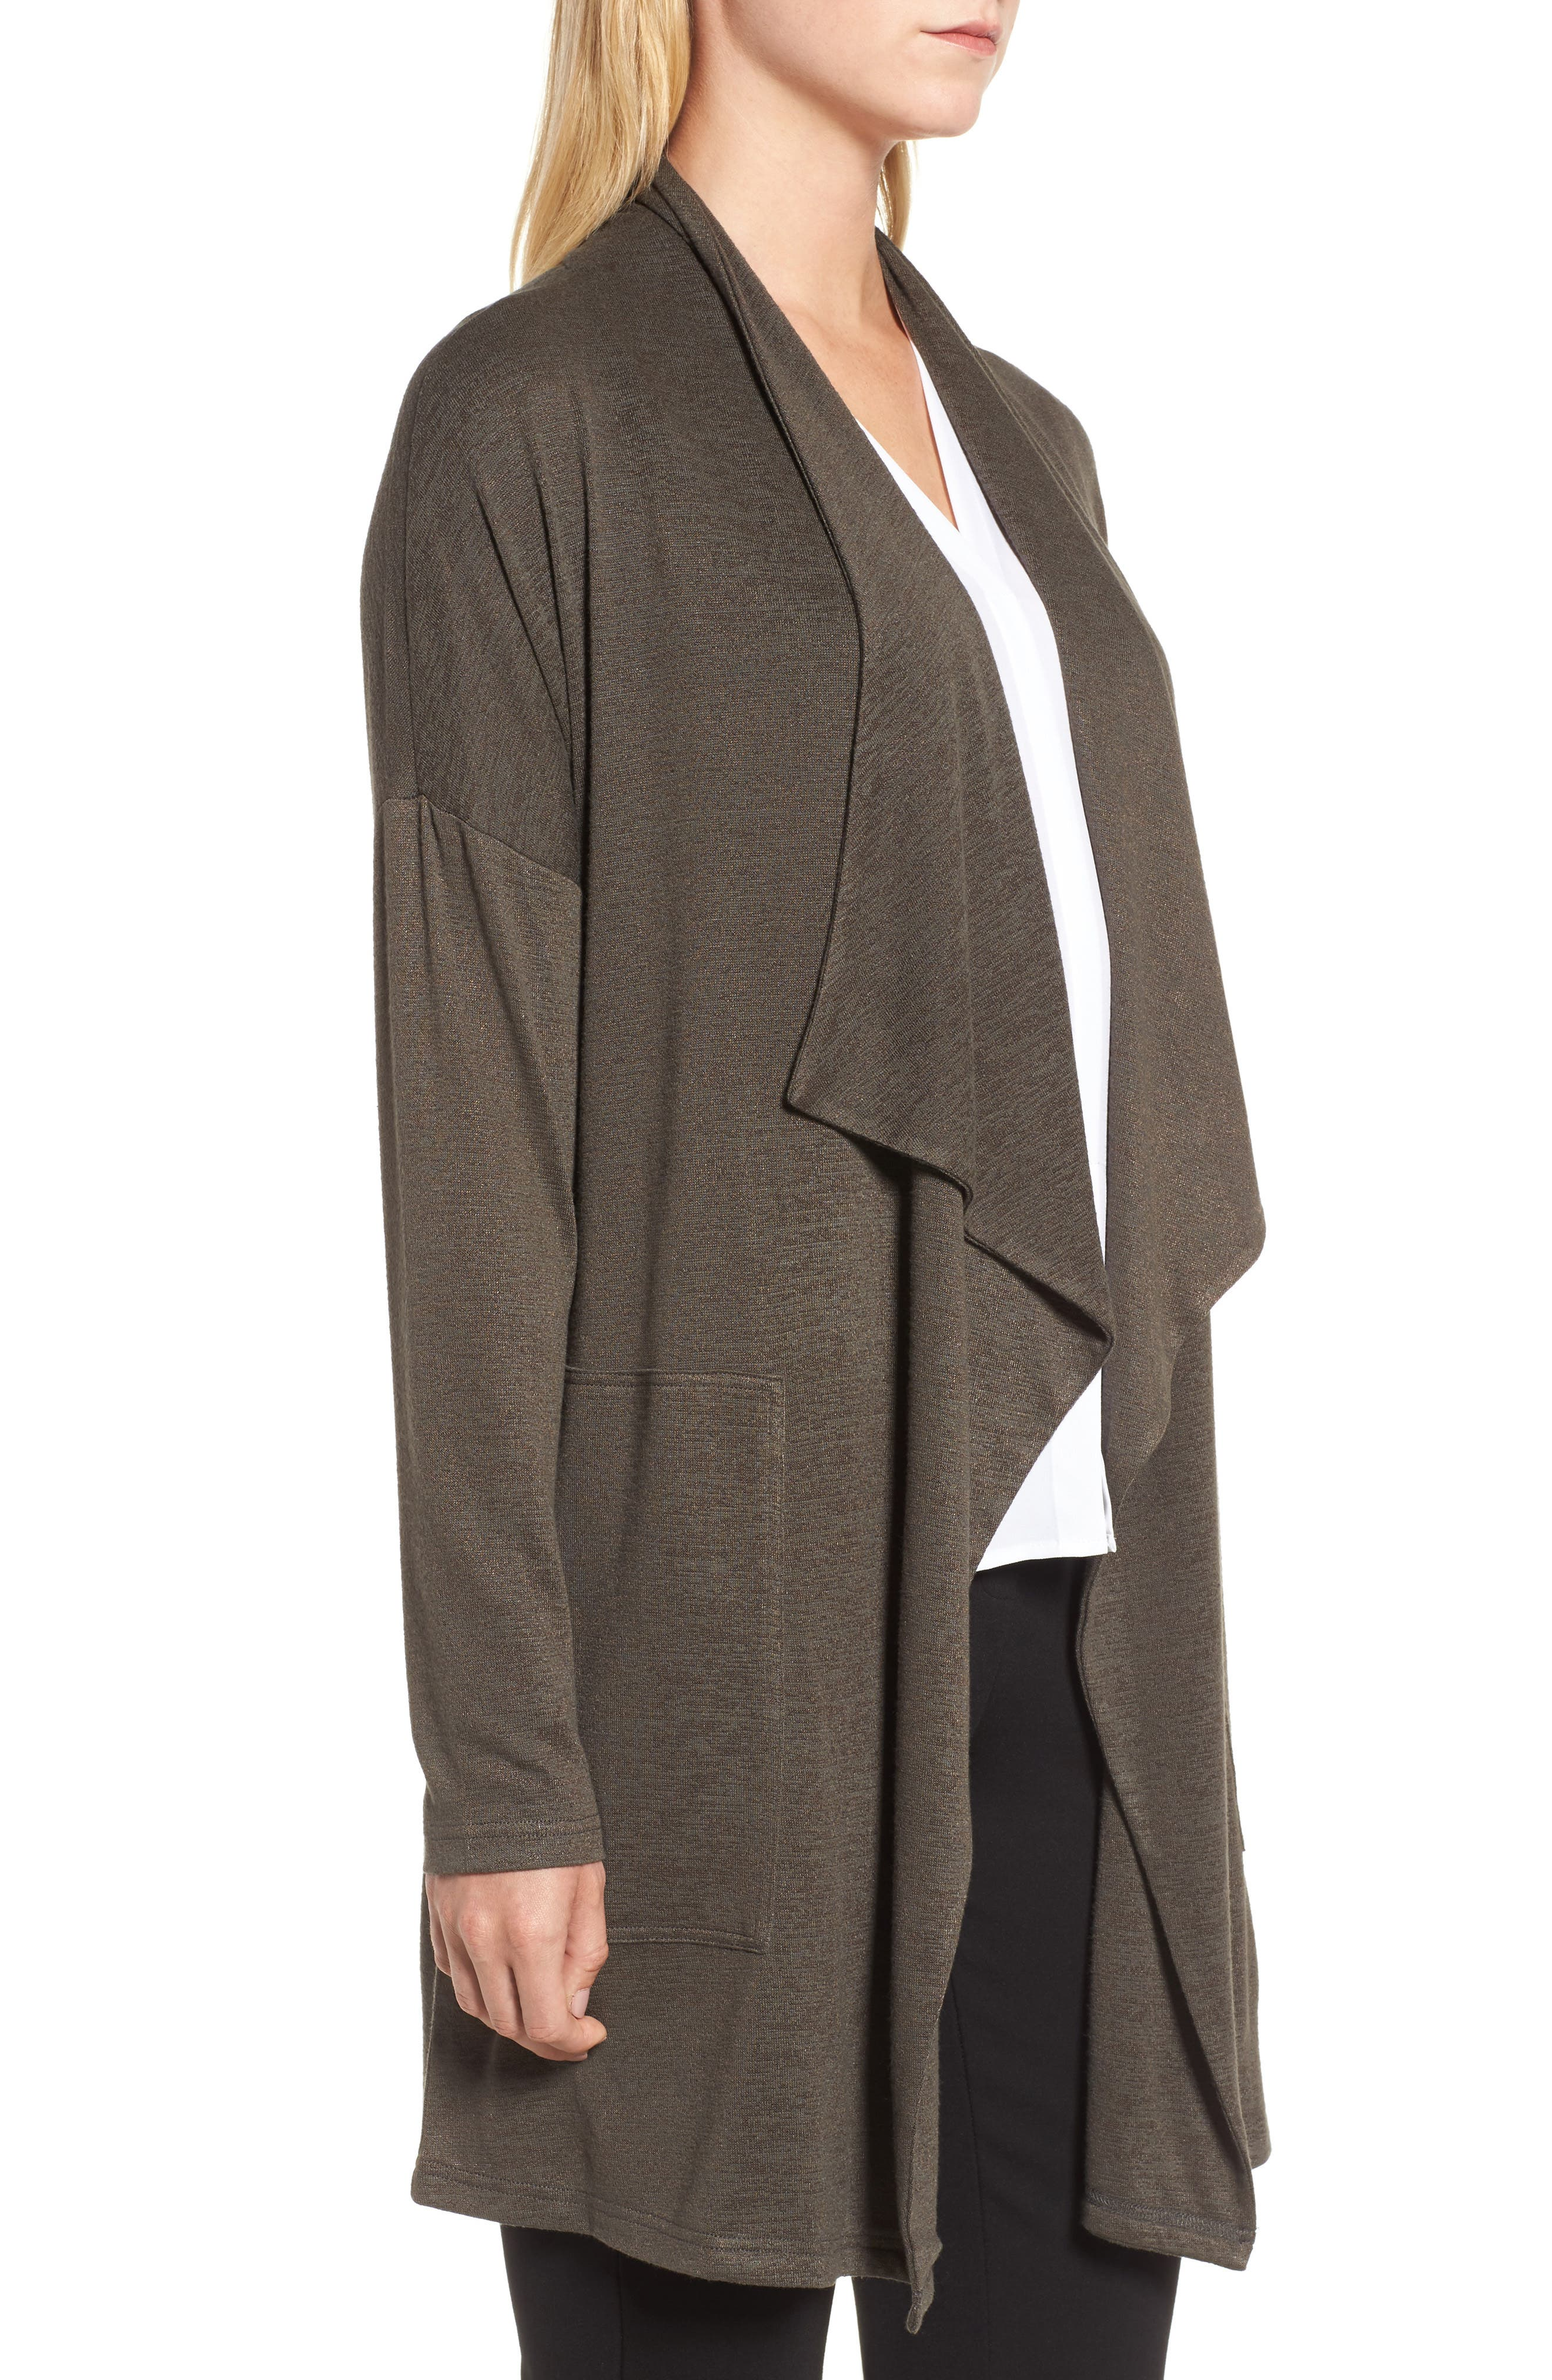 Every Occasion Drape Front Jacket,                             Alternate thumbnail 3, color,                             Terrene